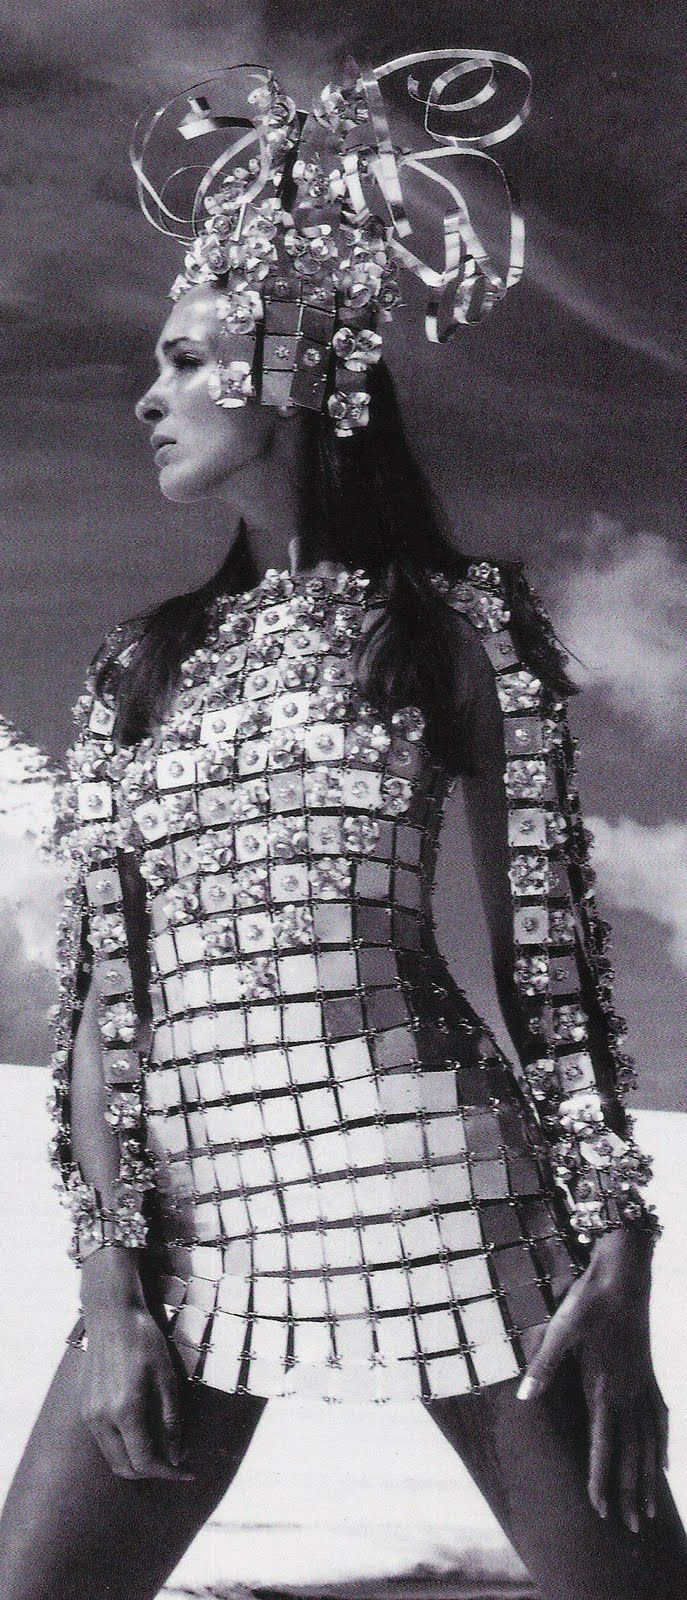 fd5eb6742b4cf paco rabanne came out with this design during the 60's making the dress  with sequins and color stones to make the dress stand out. it was short and  body ...